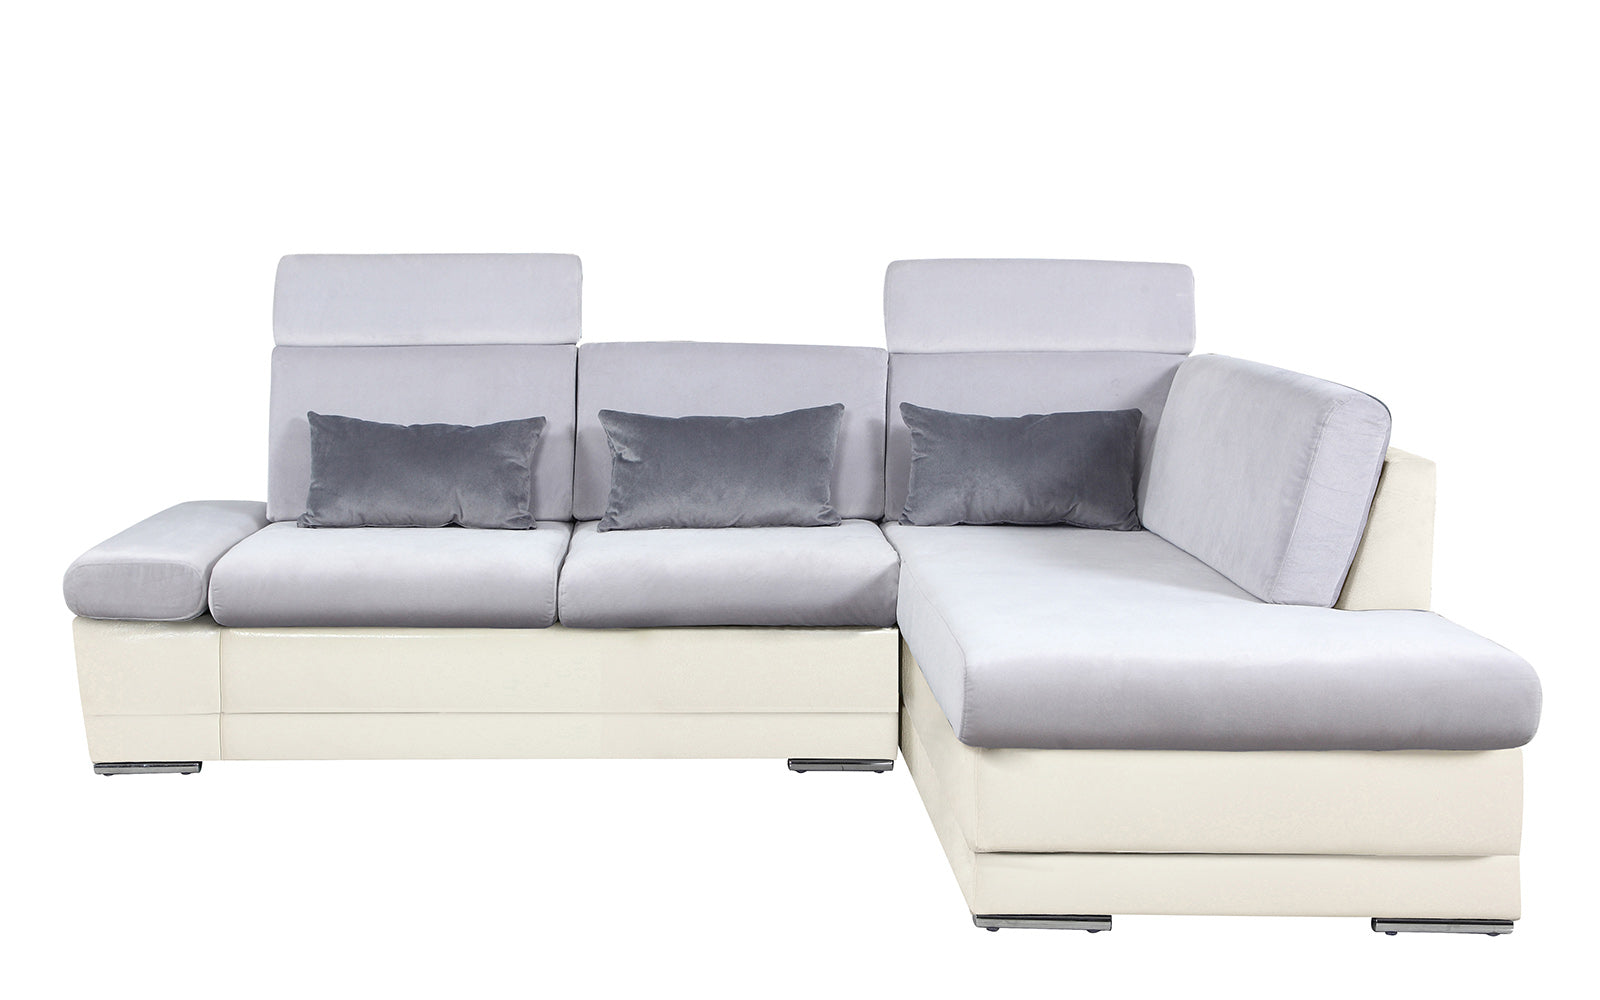 Leather Microfiber Sectional Image